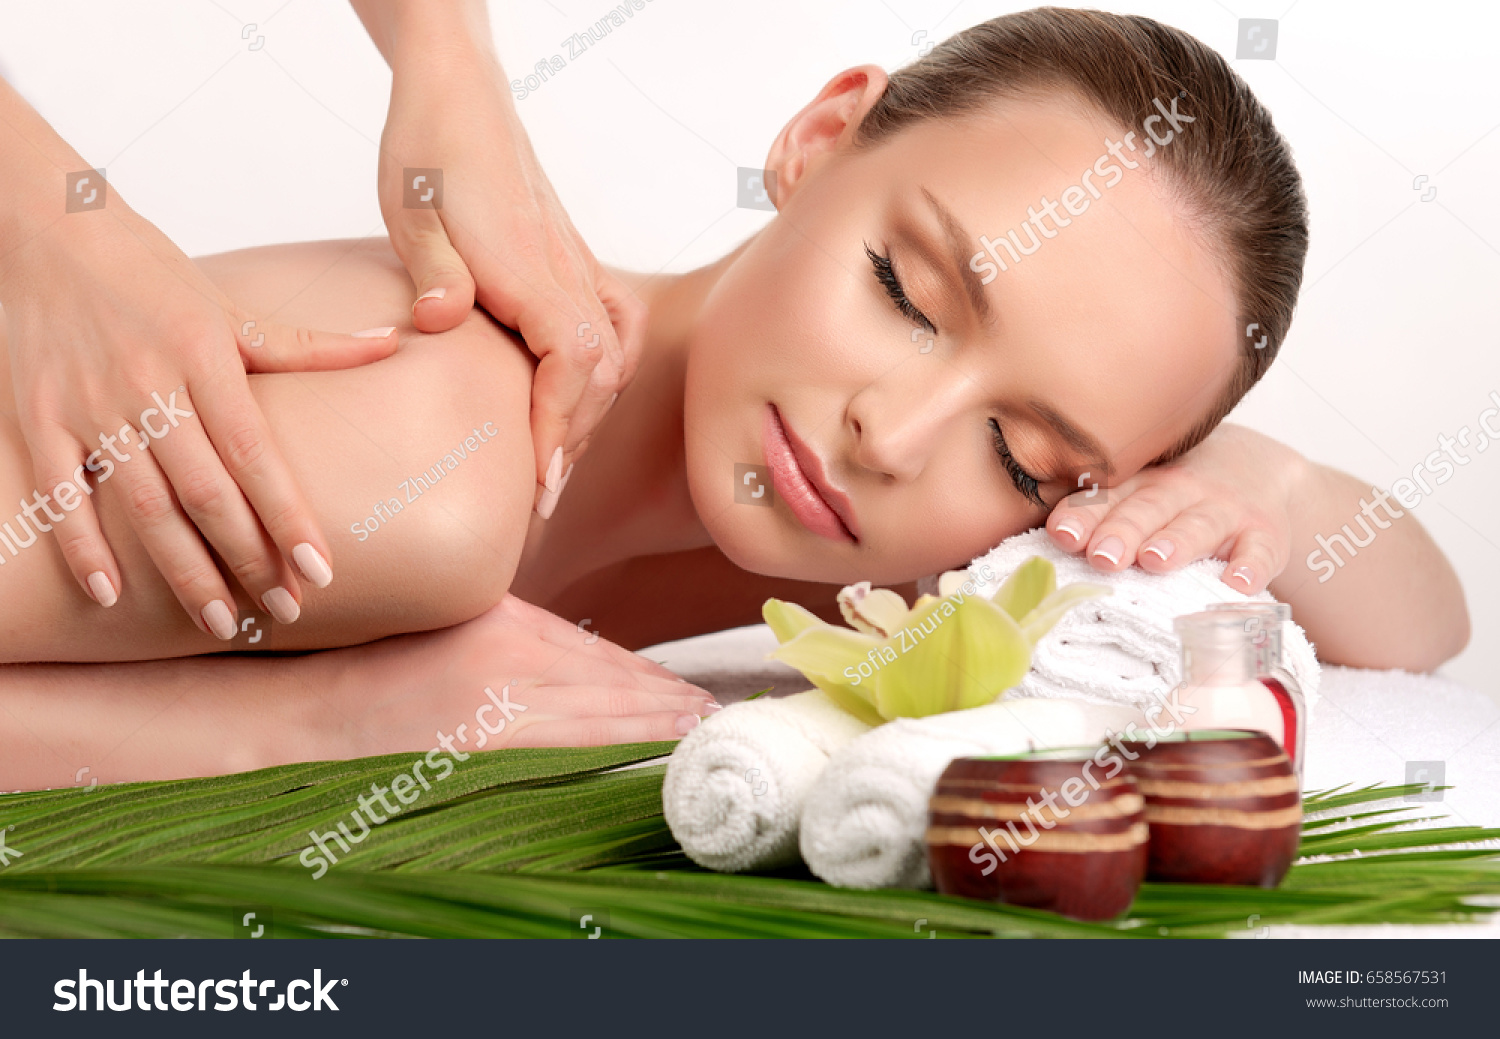 Salon Massage Body Body Massage Body Care Spa Body Massage Stock Photo Edit Now